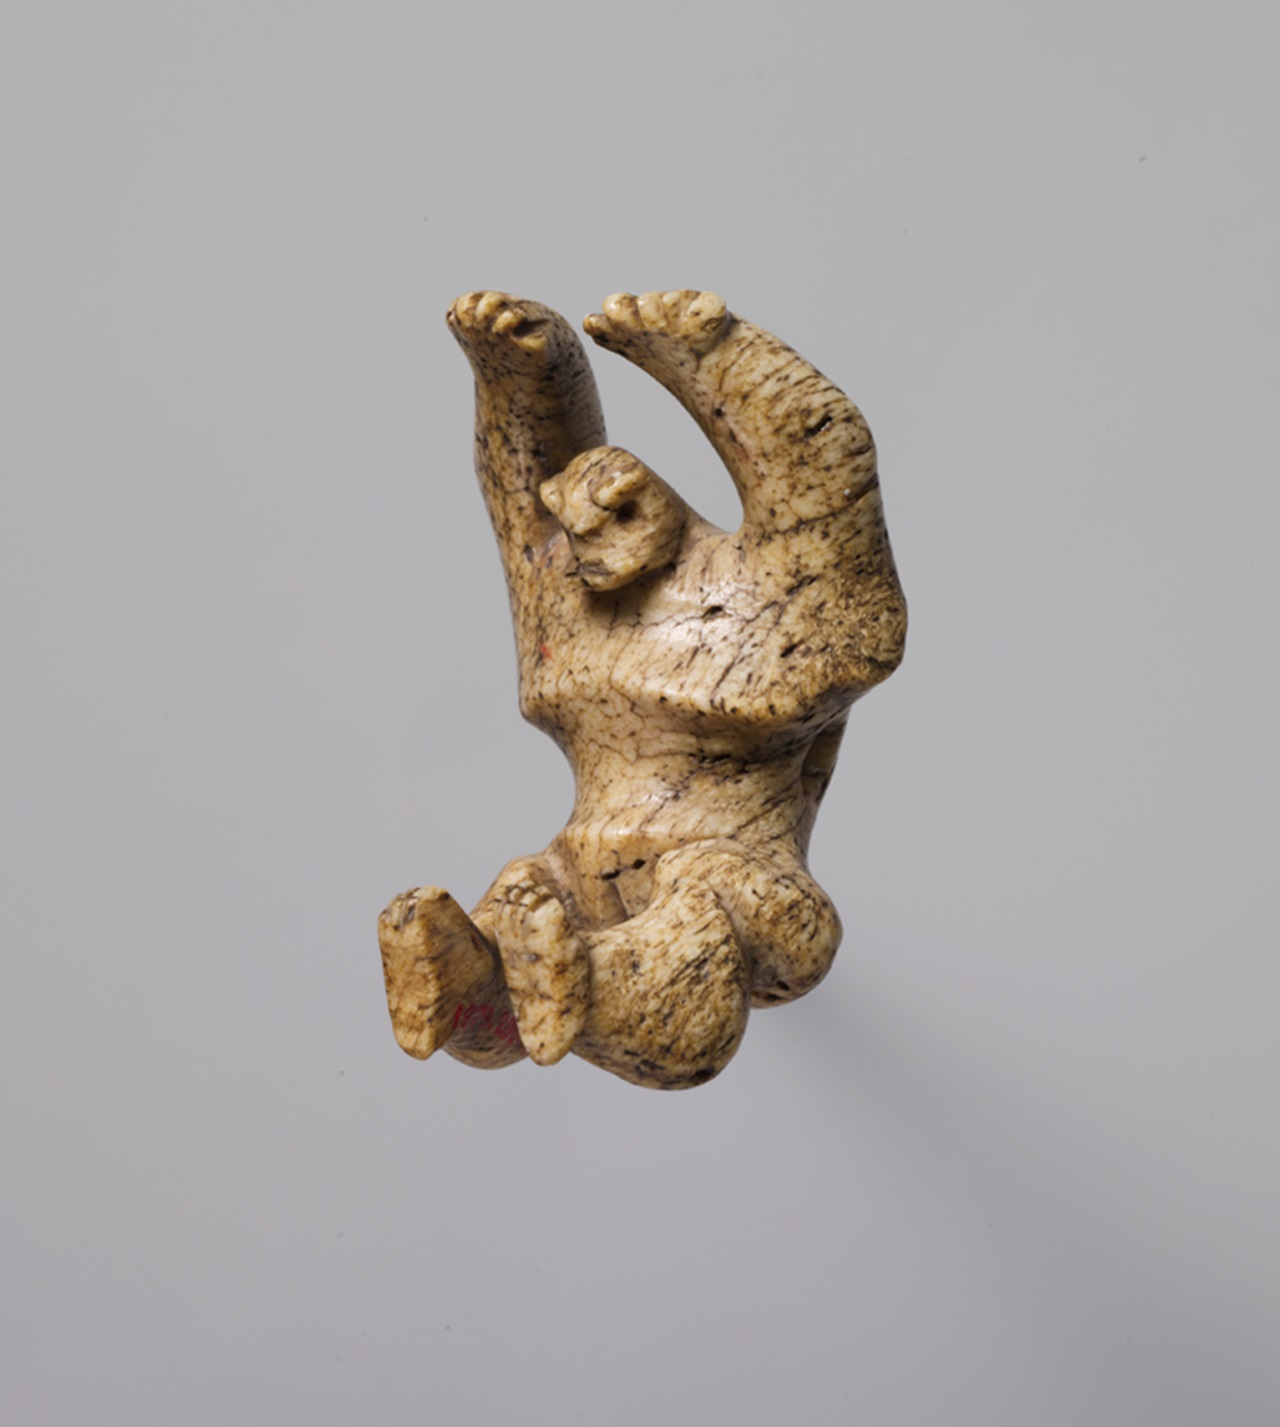 Pendant , 18th–19th century. United States, Hawai'i. Whalebone, H. 2 3/8 x W. 1 1/2 x D. 1 3/4 in. (6 x 3.8 x 4.5 cm). The Metropolitan Museum of Art, New York, The Michael C. Rockefeller Memorial Collection, Bequest of Nelson A. Rockefeller, 1979 (1979.206.1587)